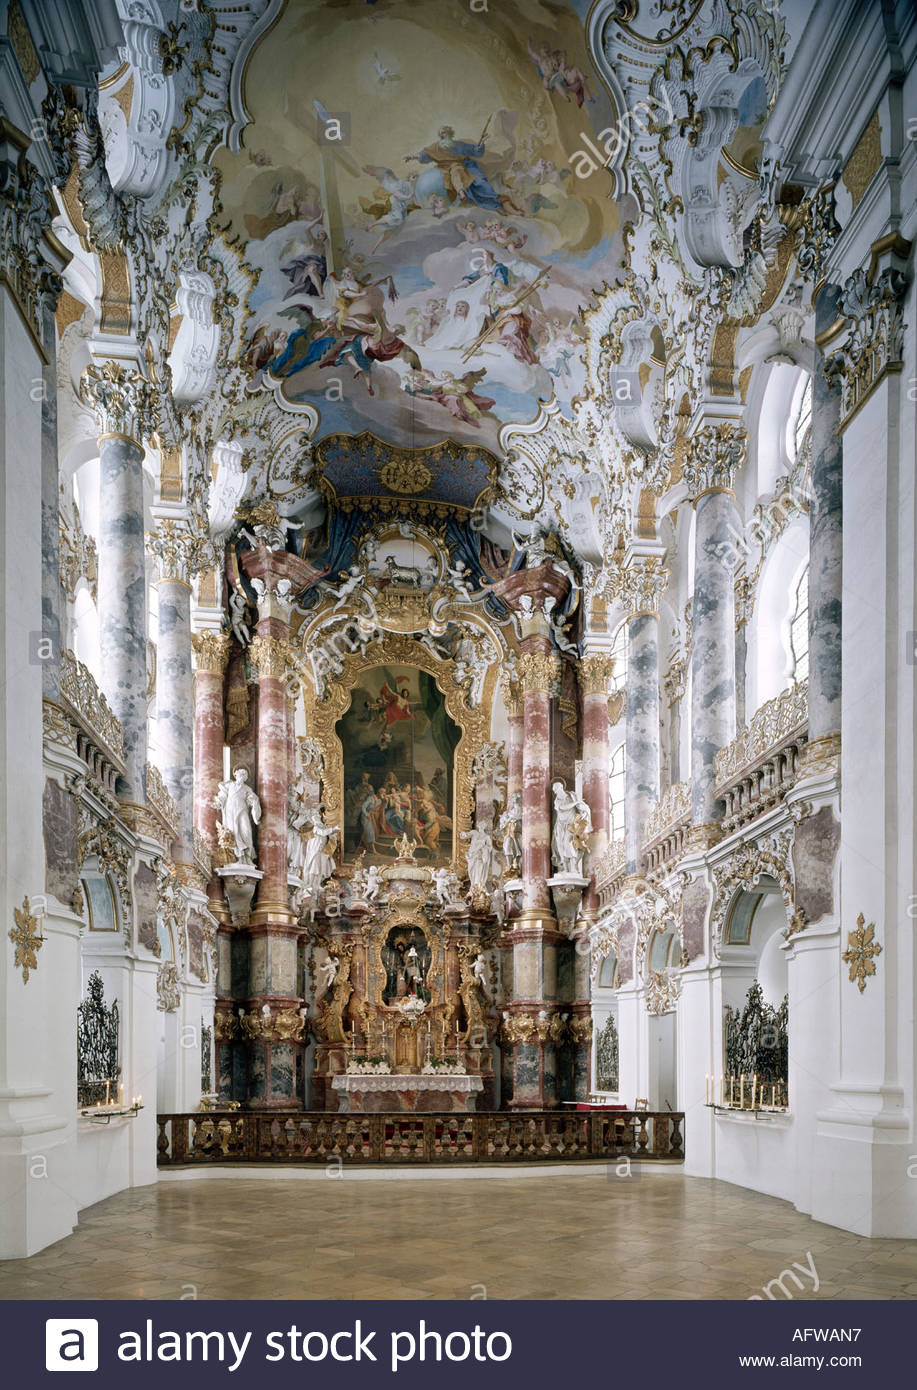 Architecture Churches And Convents Germany Bavaria Steingaden Schongau Wieskirche Interior View High Altar 1745